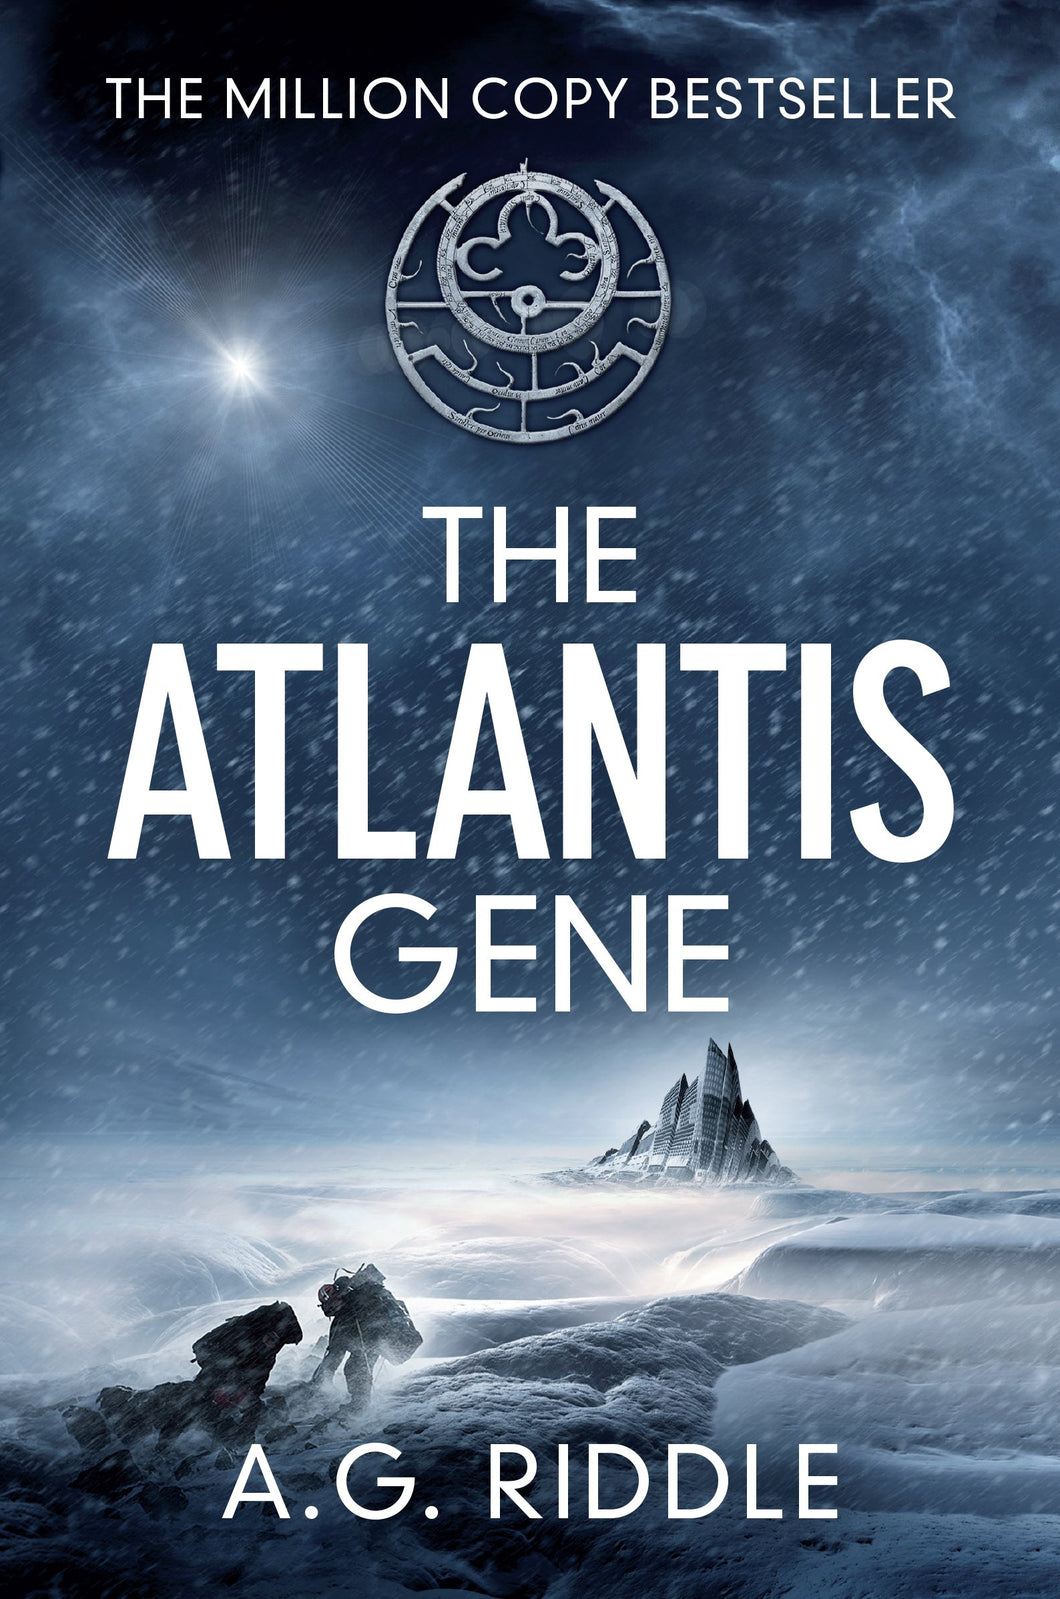 The Atlantis Gene - eBook, (Phone, Tablet, Computer) Fast Instant delivery